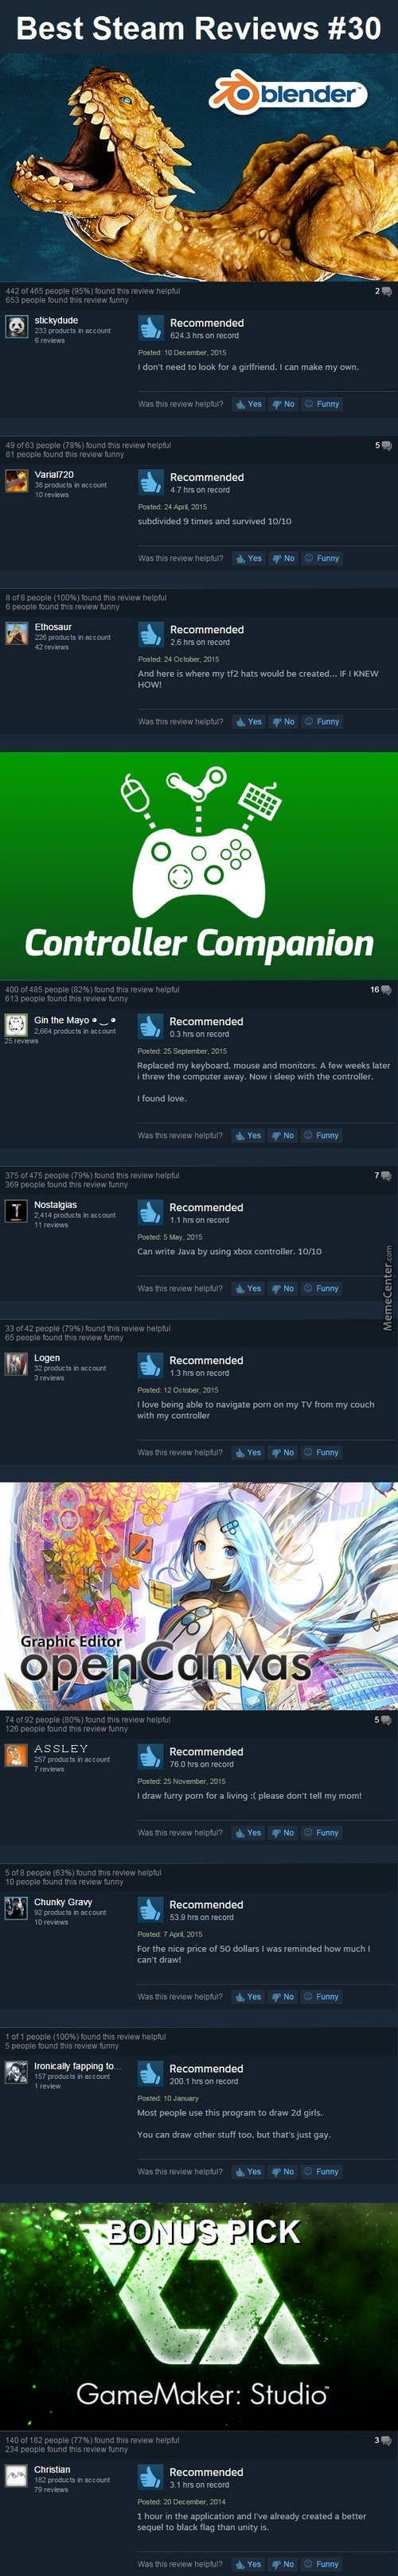 Best Steam Reviews #30 - Will These Blend?